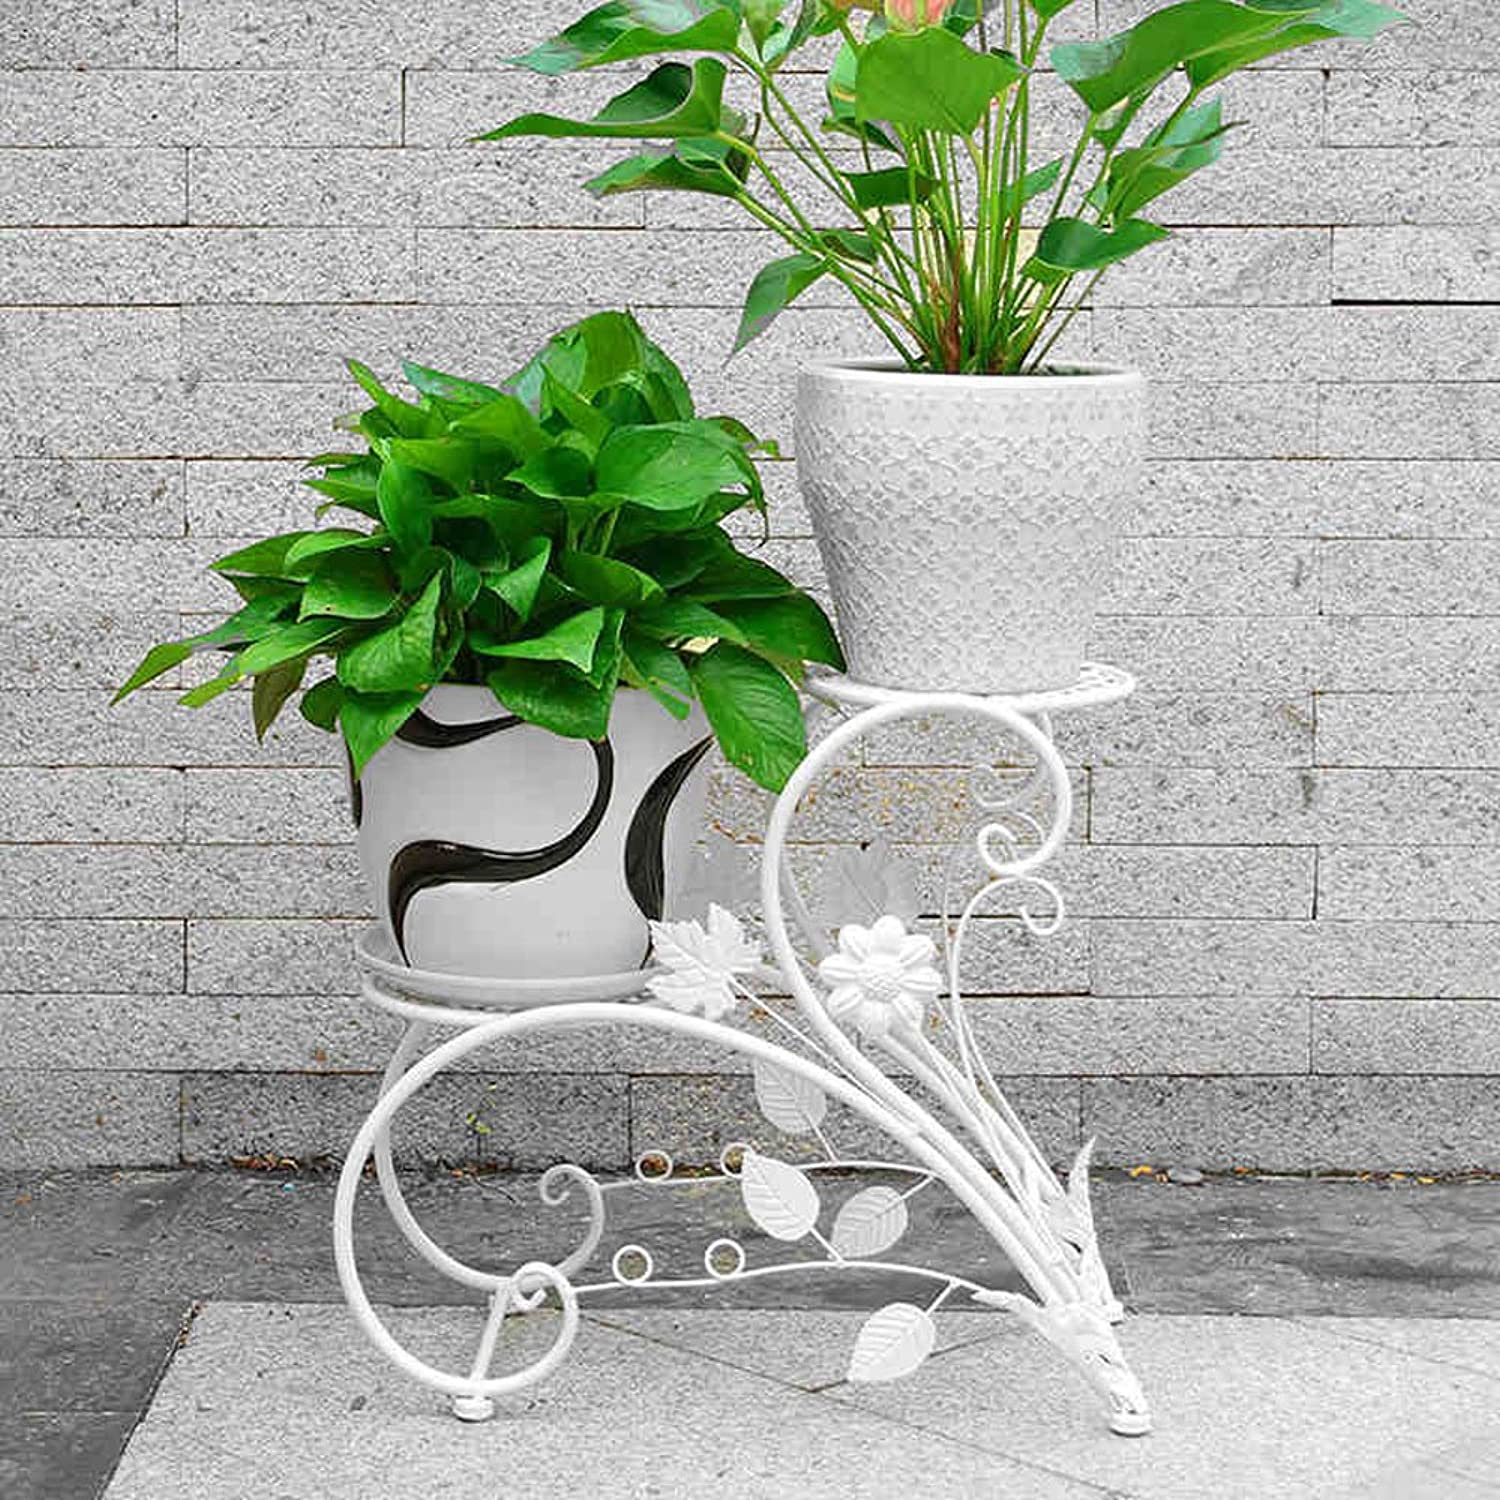 SYF White European Coffee Shop and Other Floor Stand   Black Indoor Balcony Garden Multi-Layer Pot Rack 44x40cm A+ (color   B)